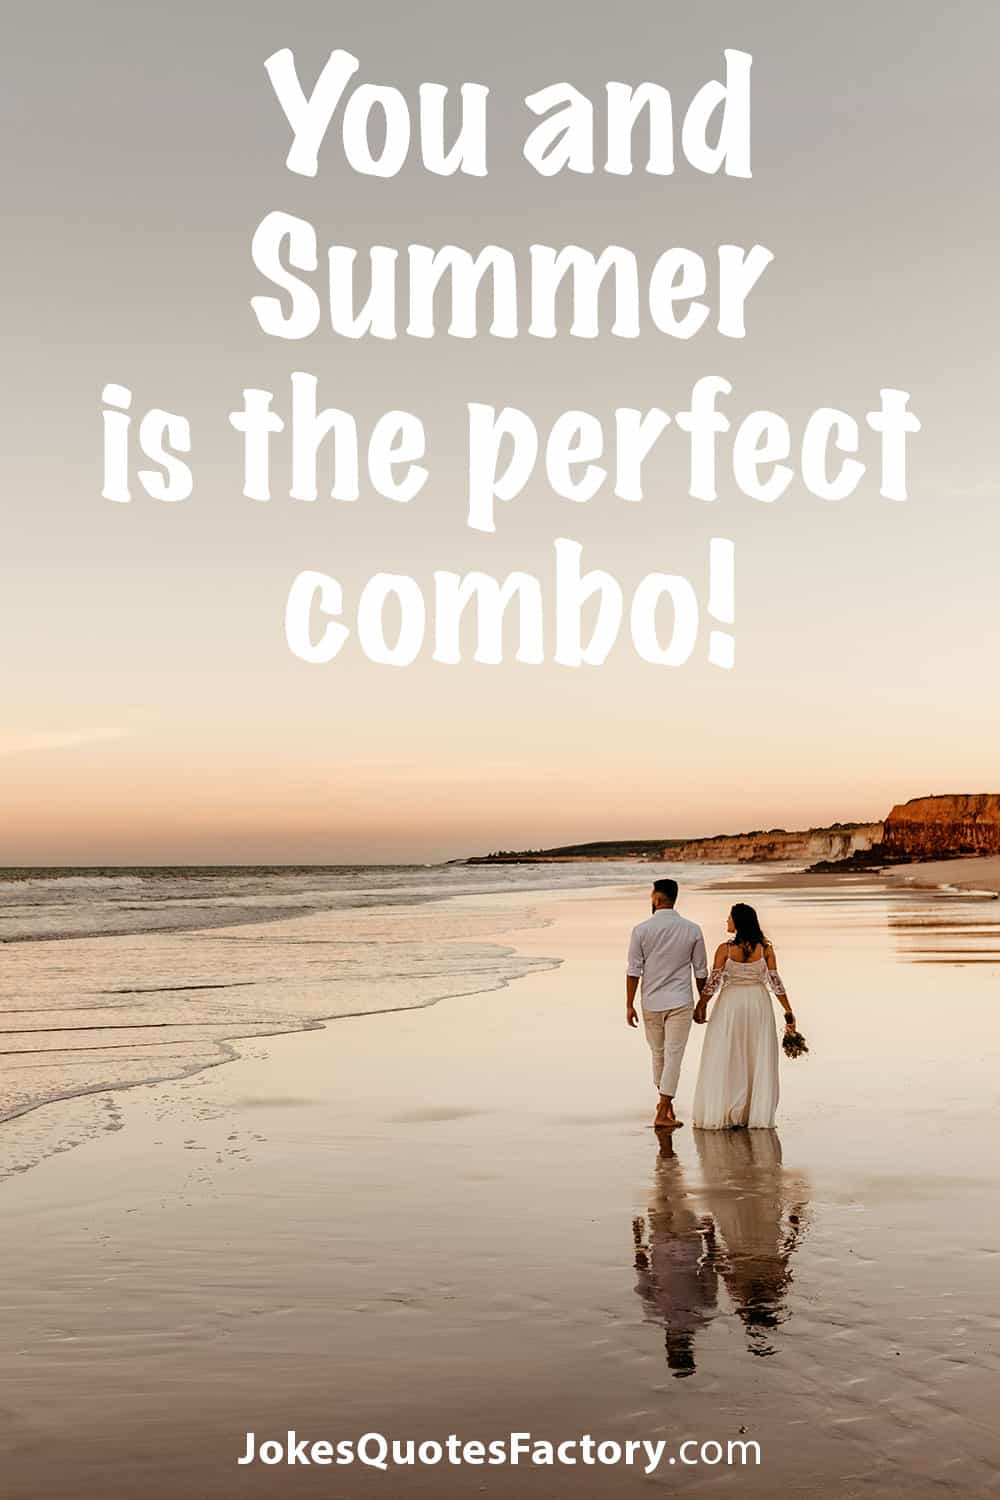 You and Summer is the perfect combo!